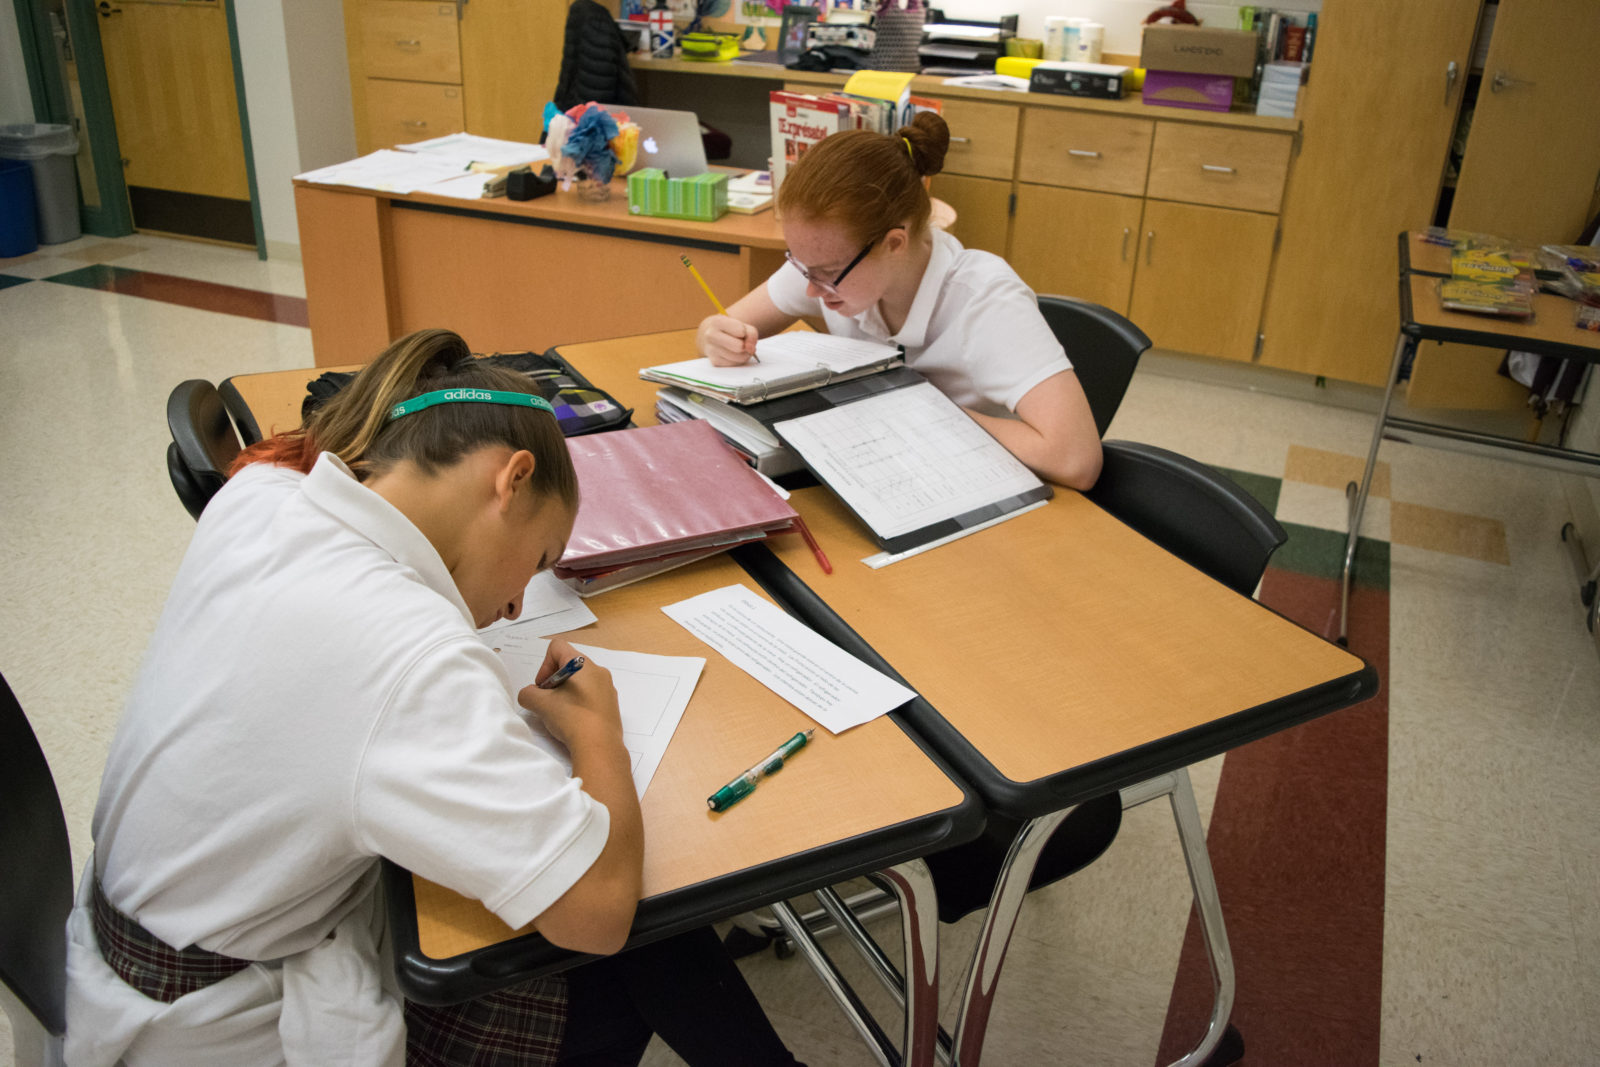 Alyssa K. and Laurel M. working diligently in Spanish class.